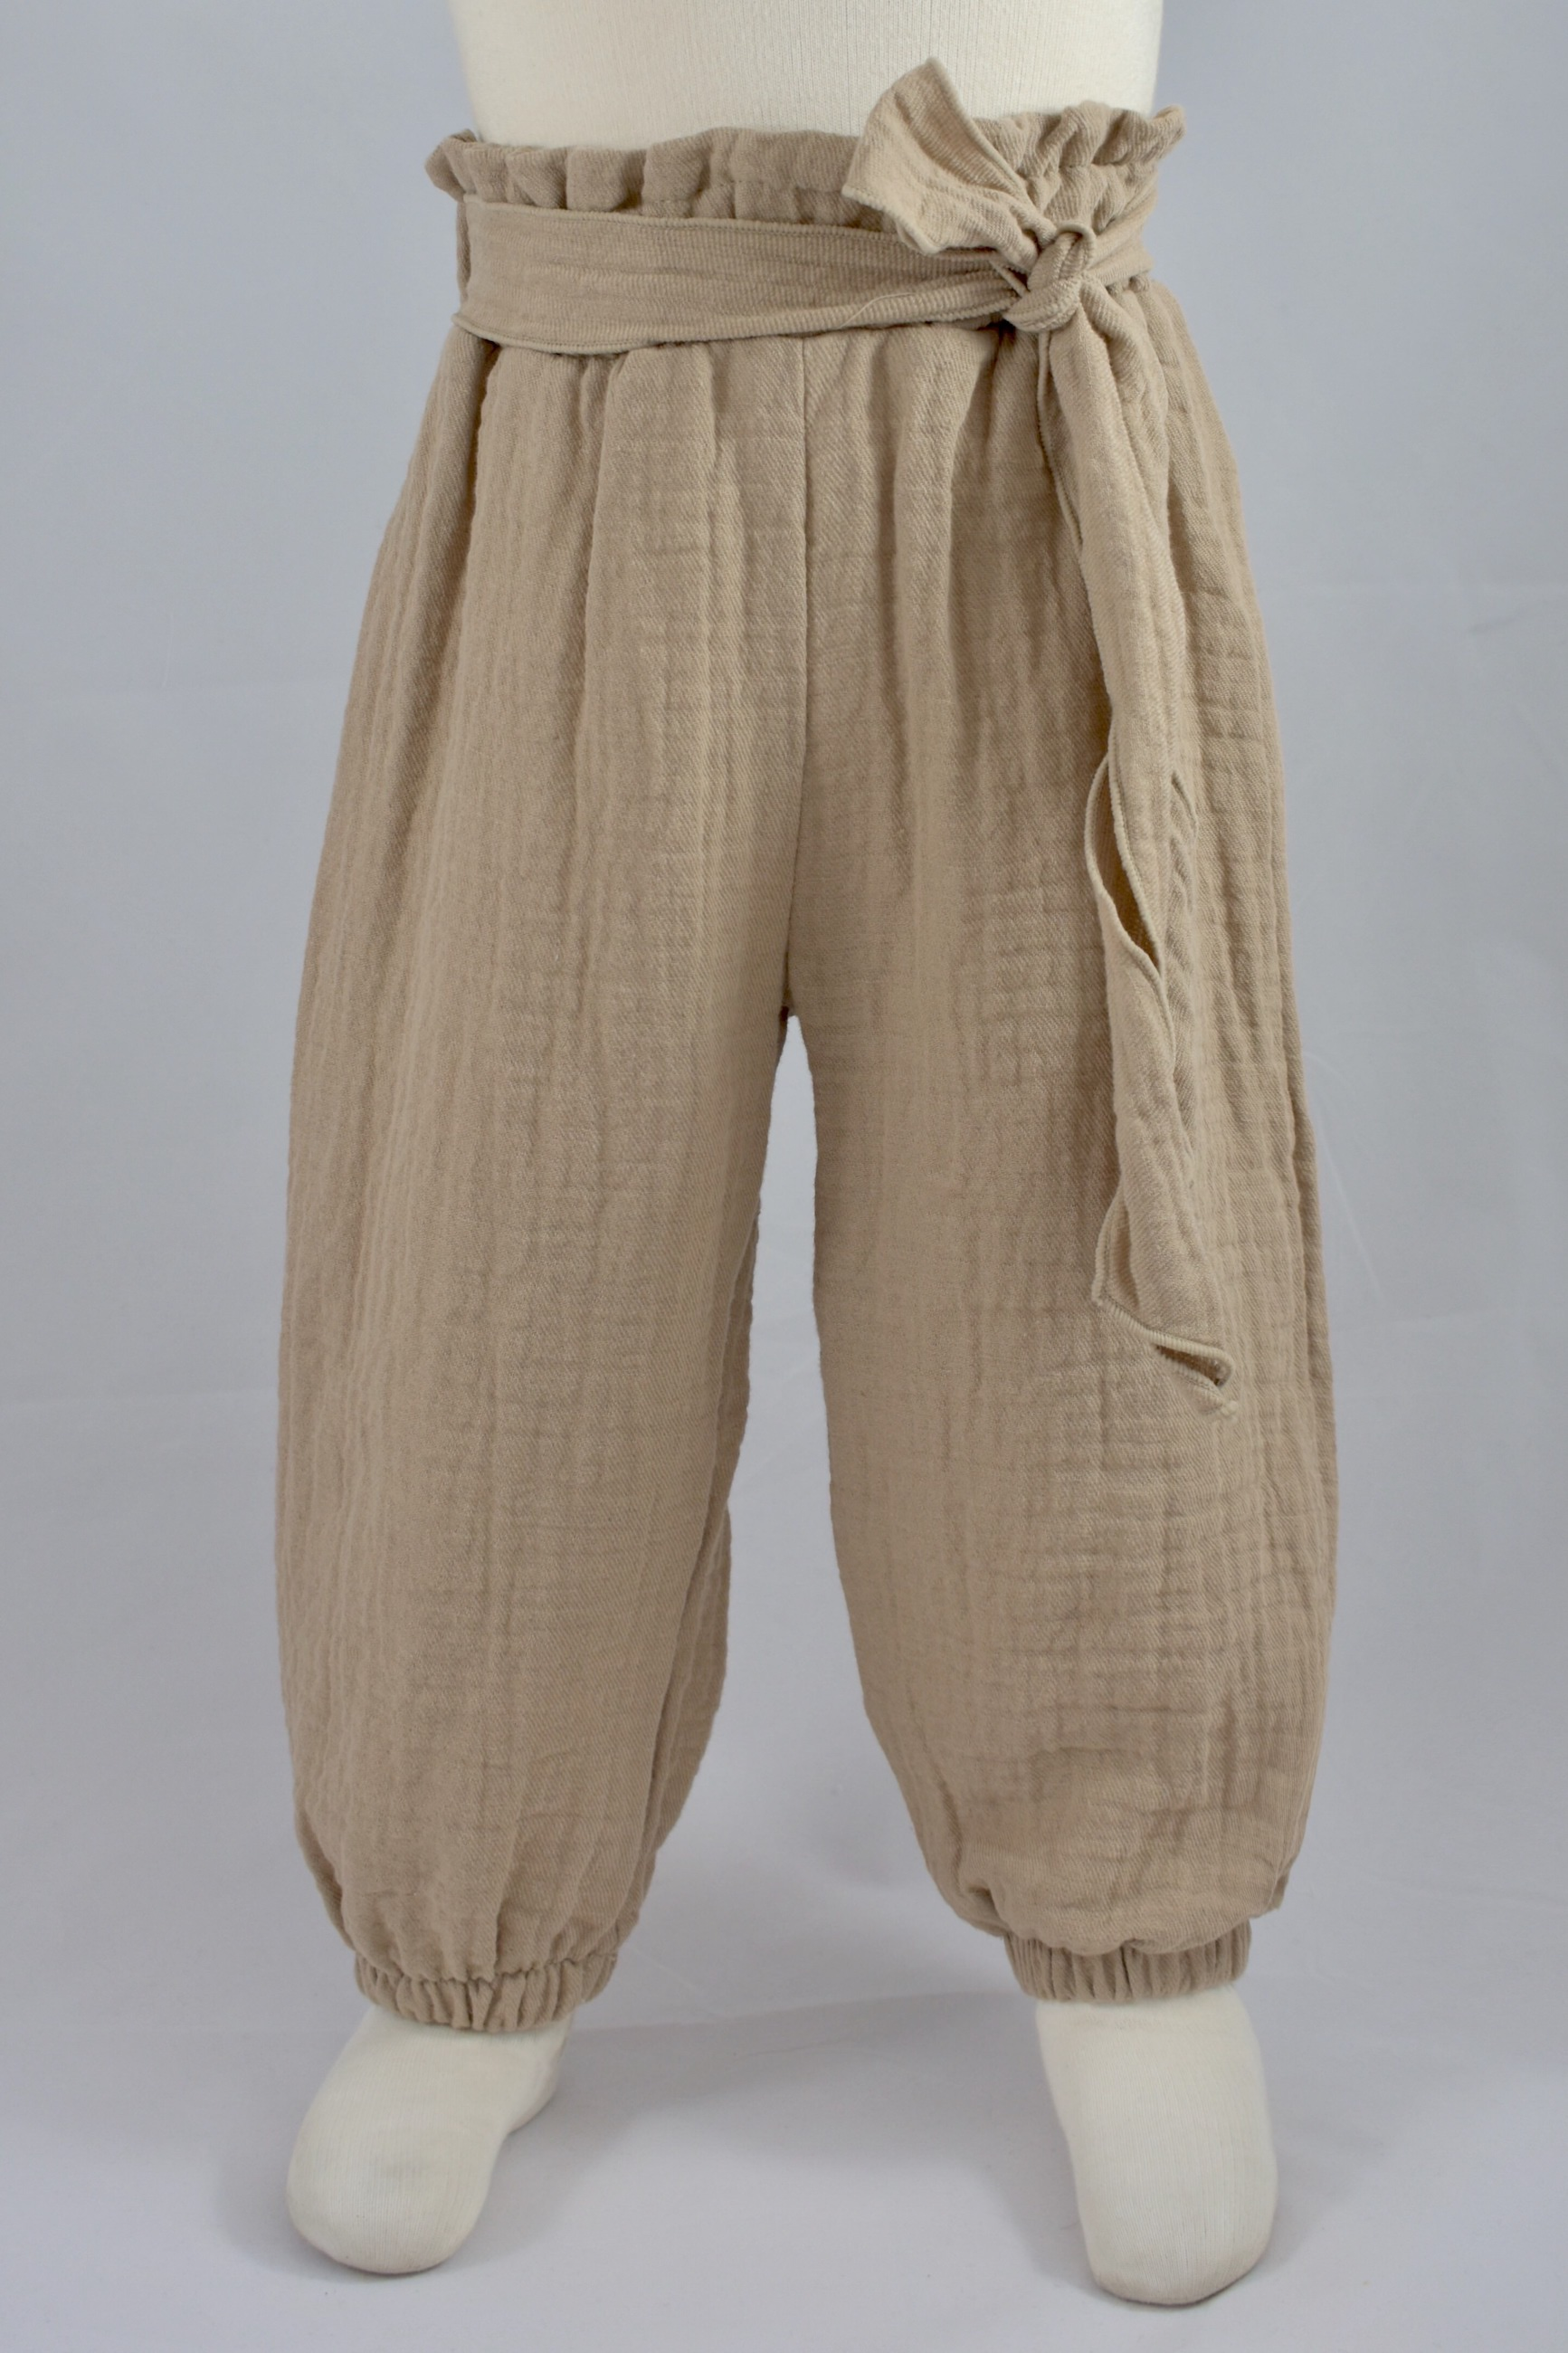 Samurai Pants Sold By Moon Fries Apparel On Storenvy